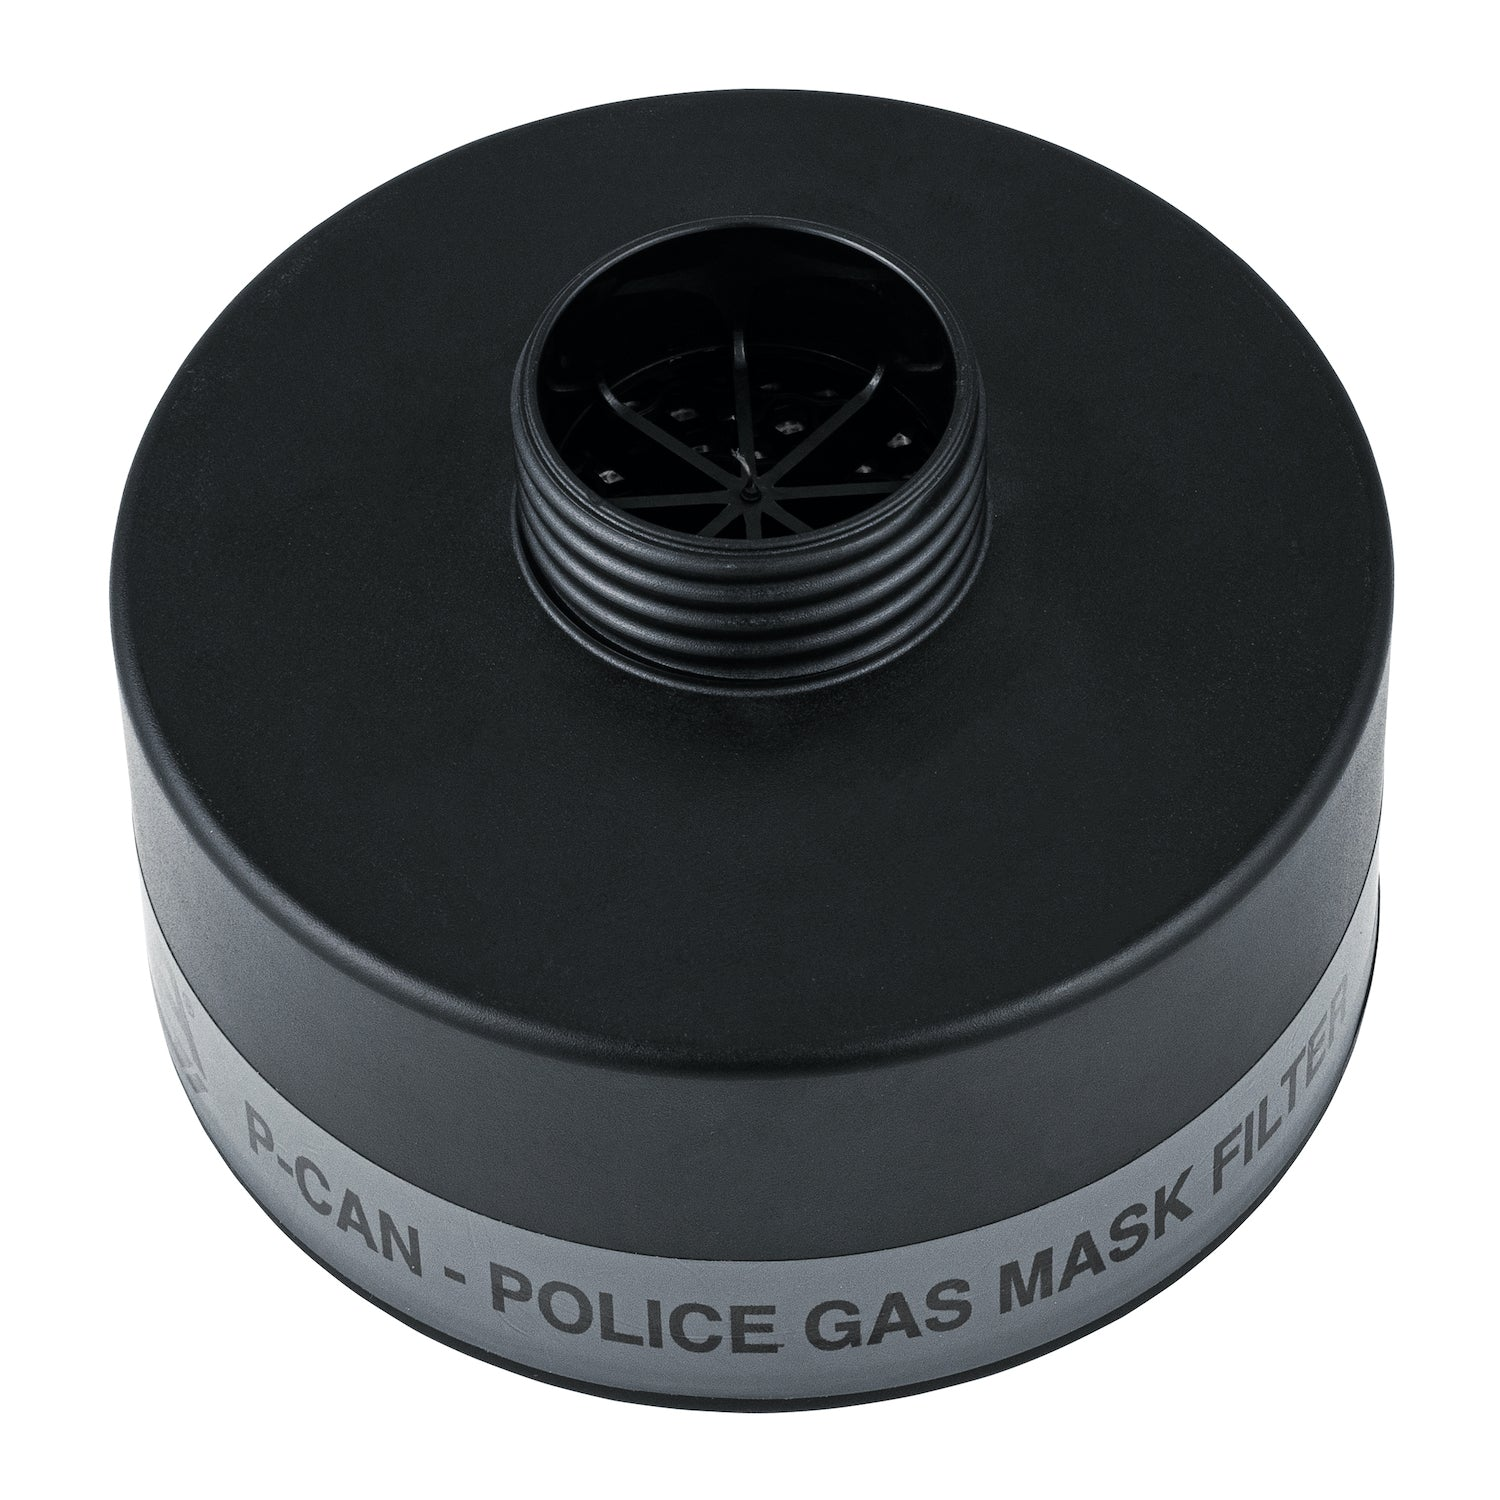 P-CAN Police Gas Mask Filter side view